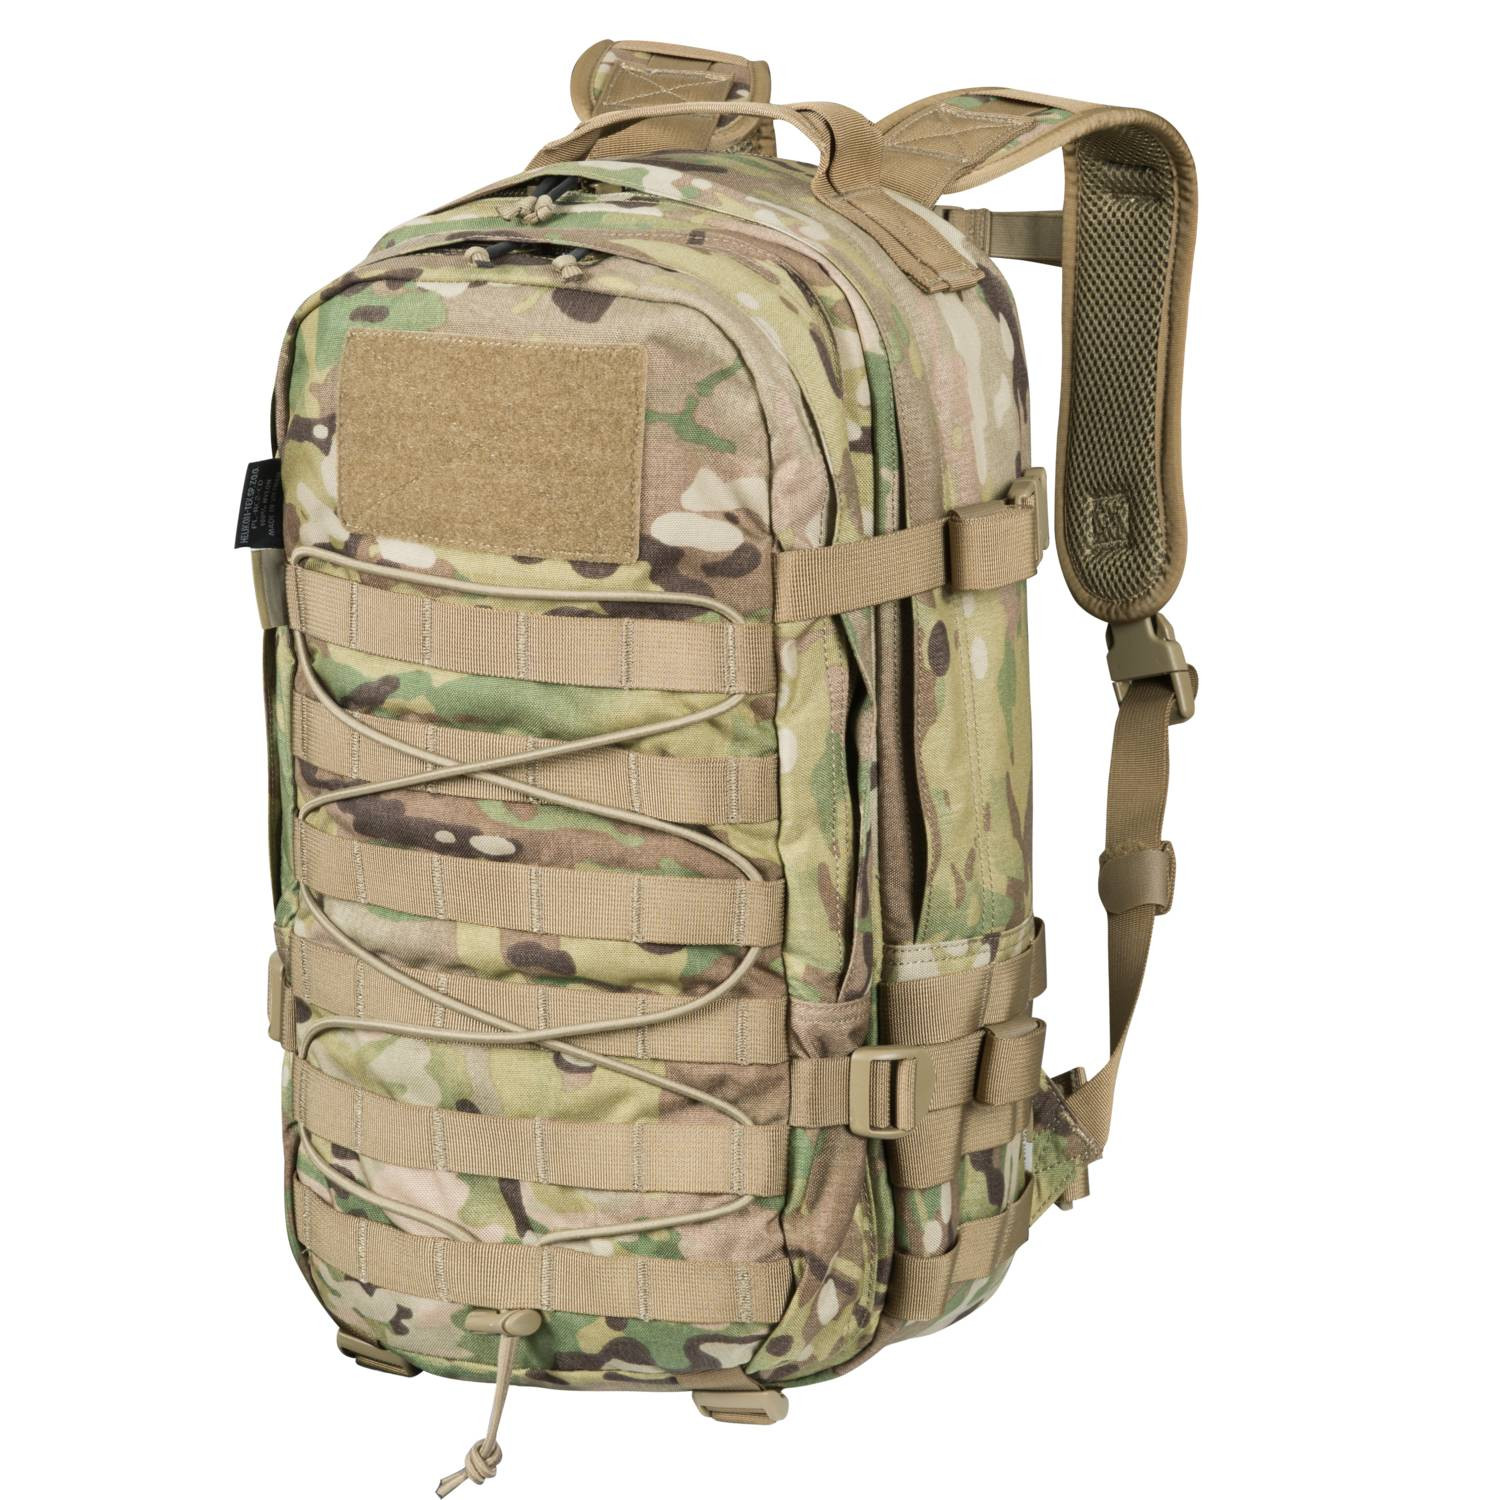 BALO RACCOON MK2® BACKPACK - CORDURA® - Multicam